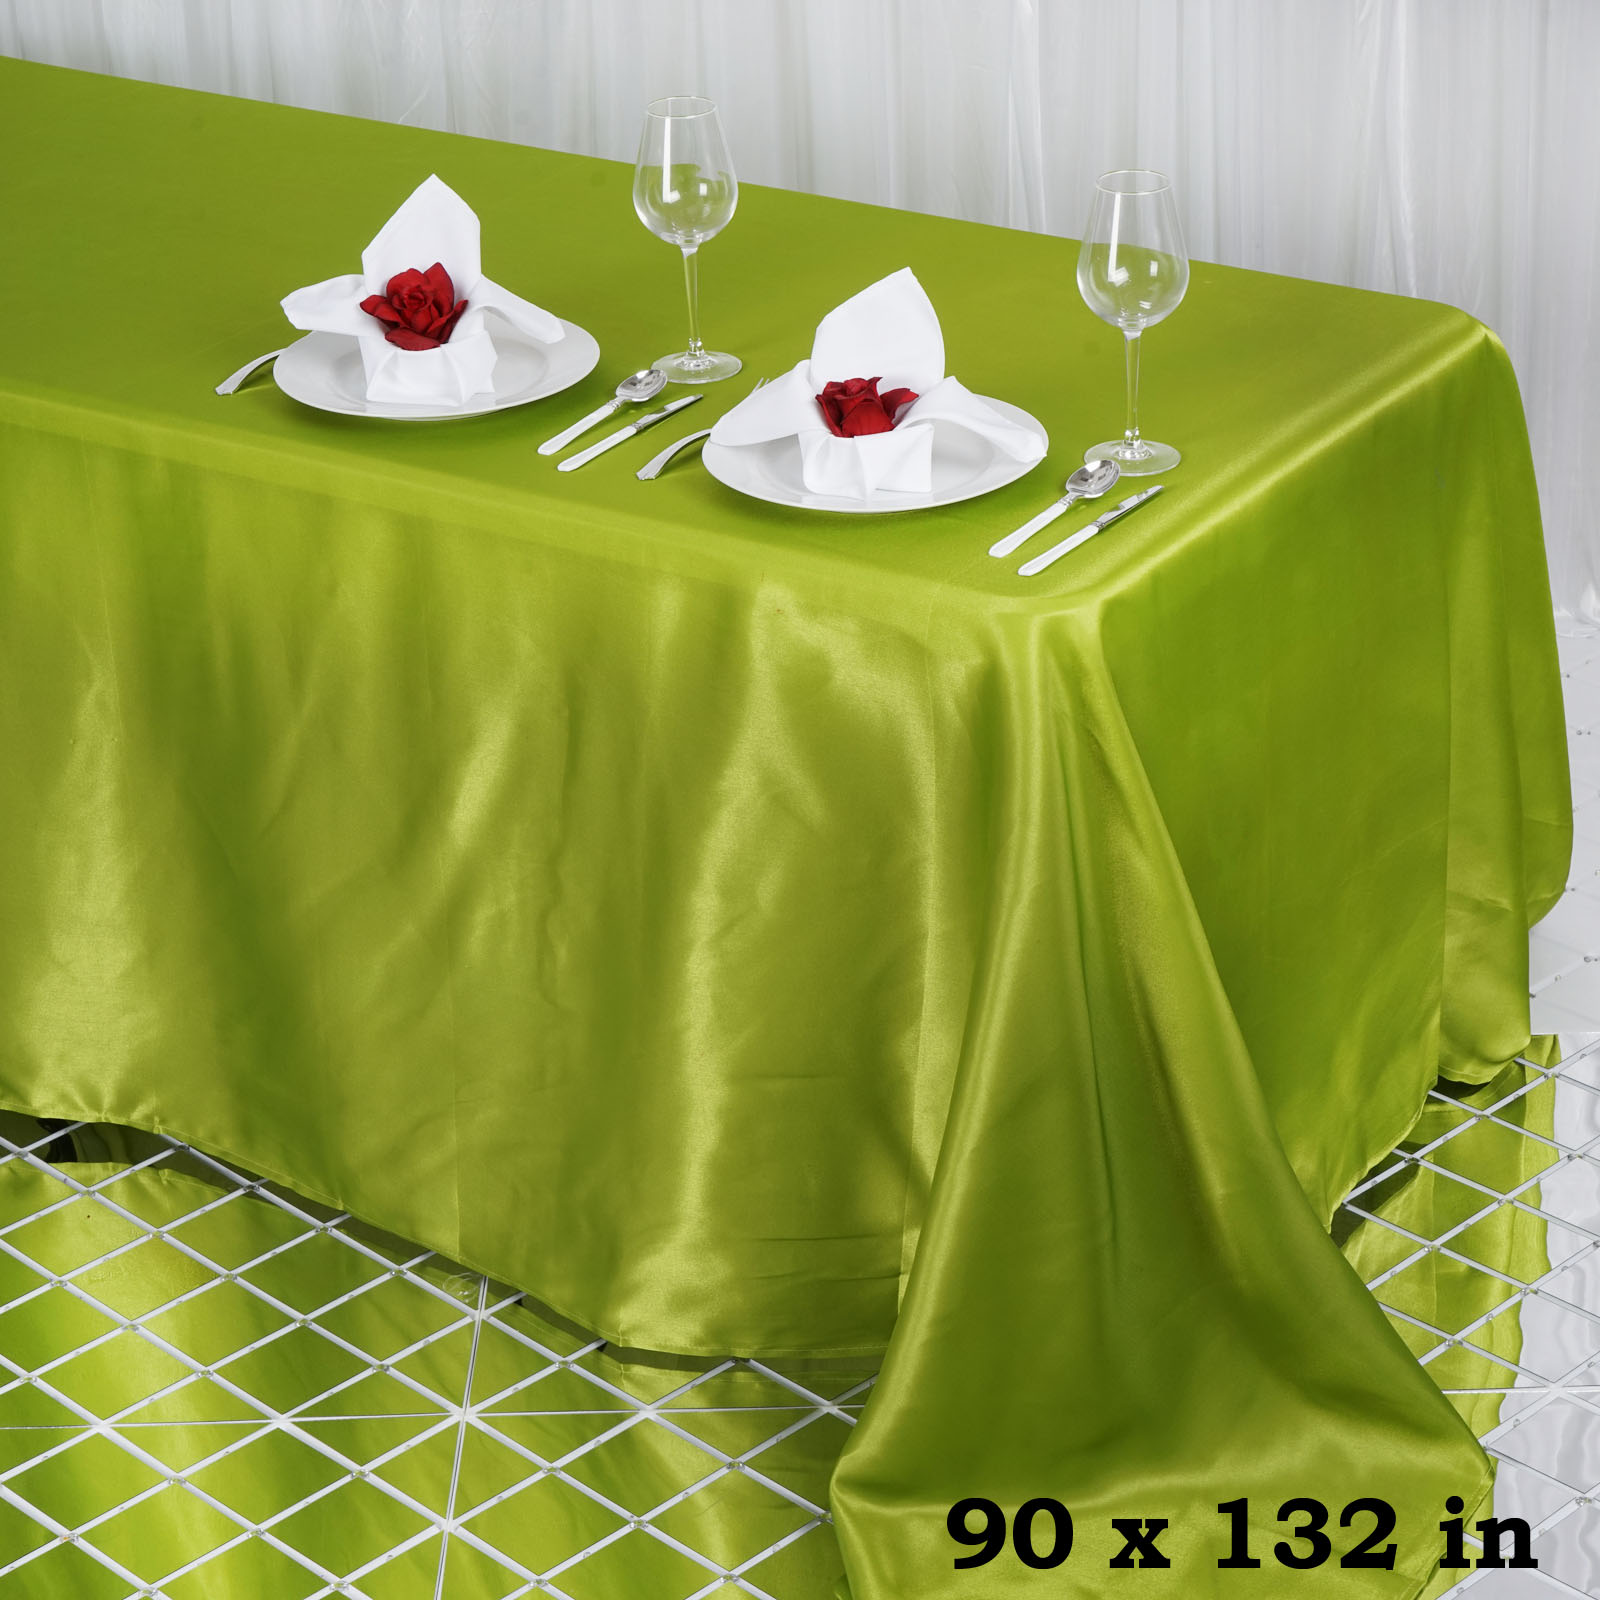 "Efavormart 90x132"" Rectangle Satin Tablecloth for Kitchen Dining Catering Wedding Birthday Party Decorations Events"